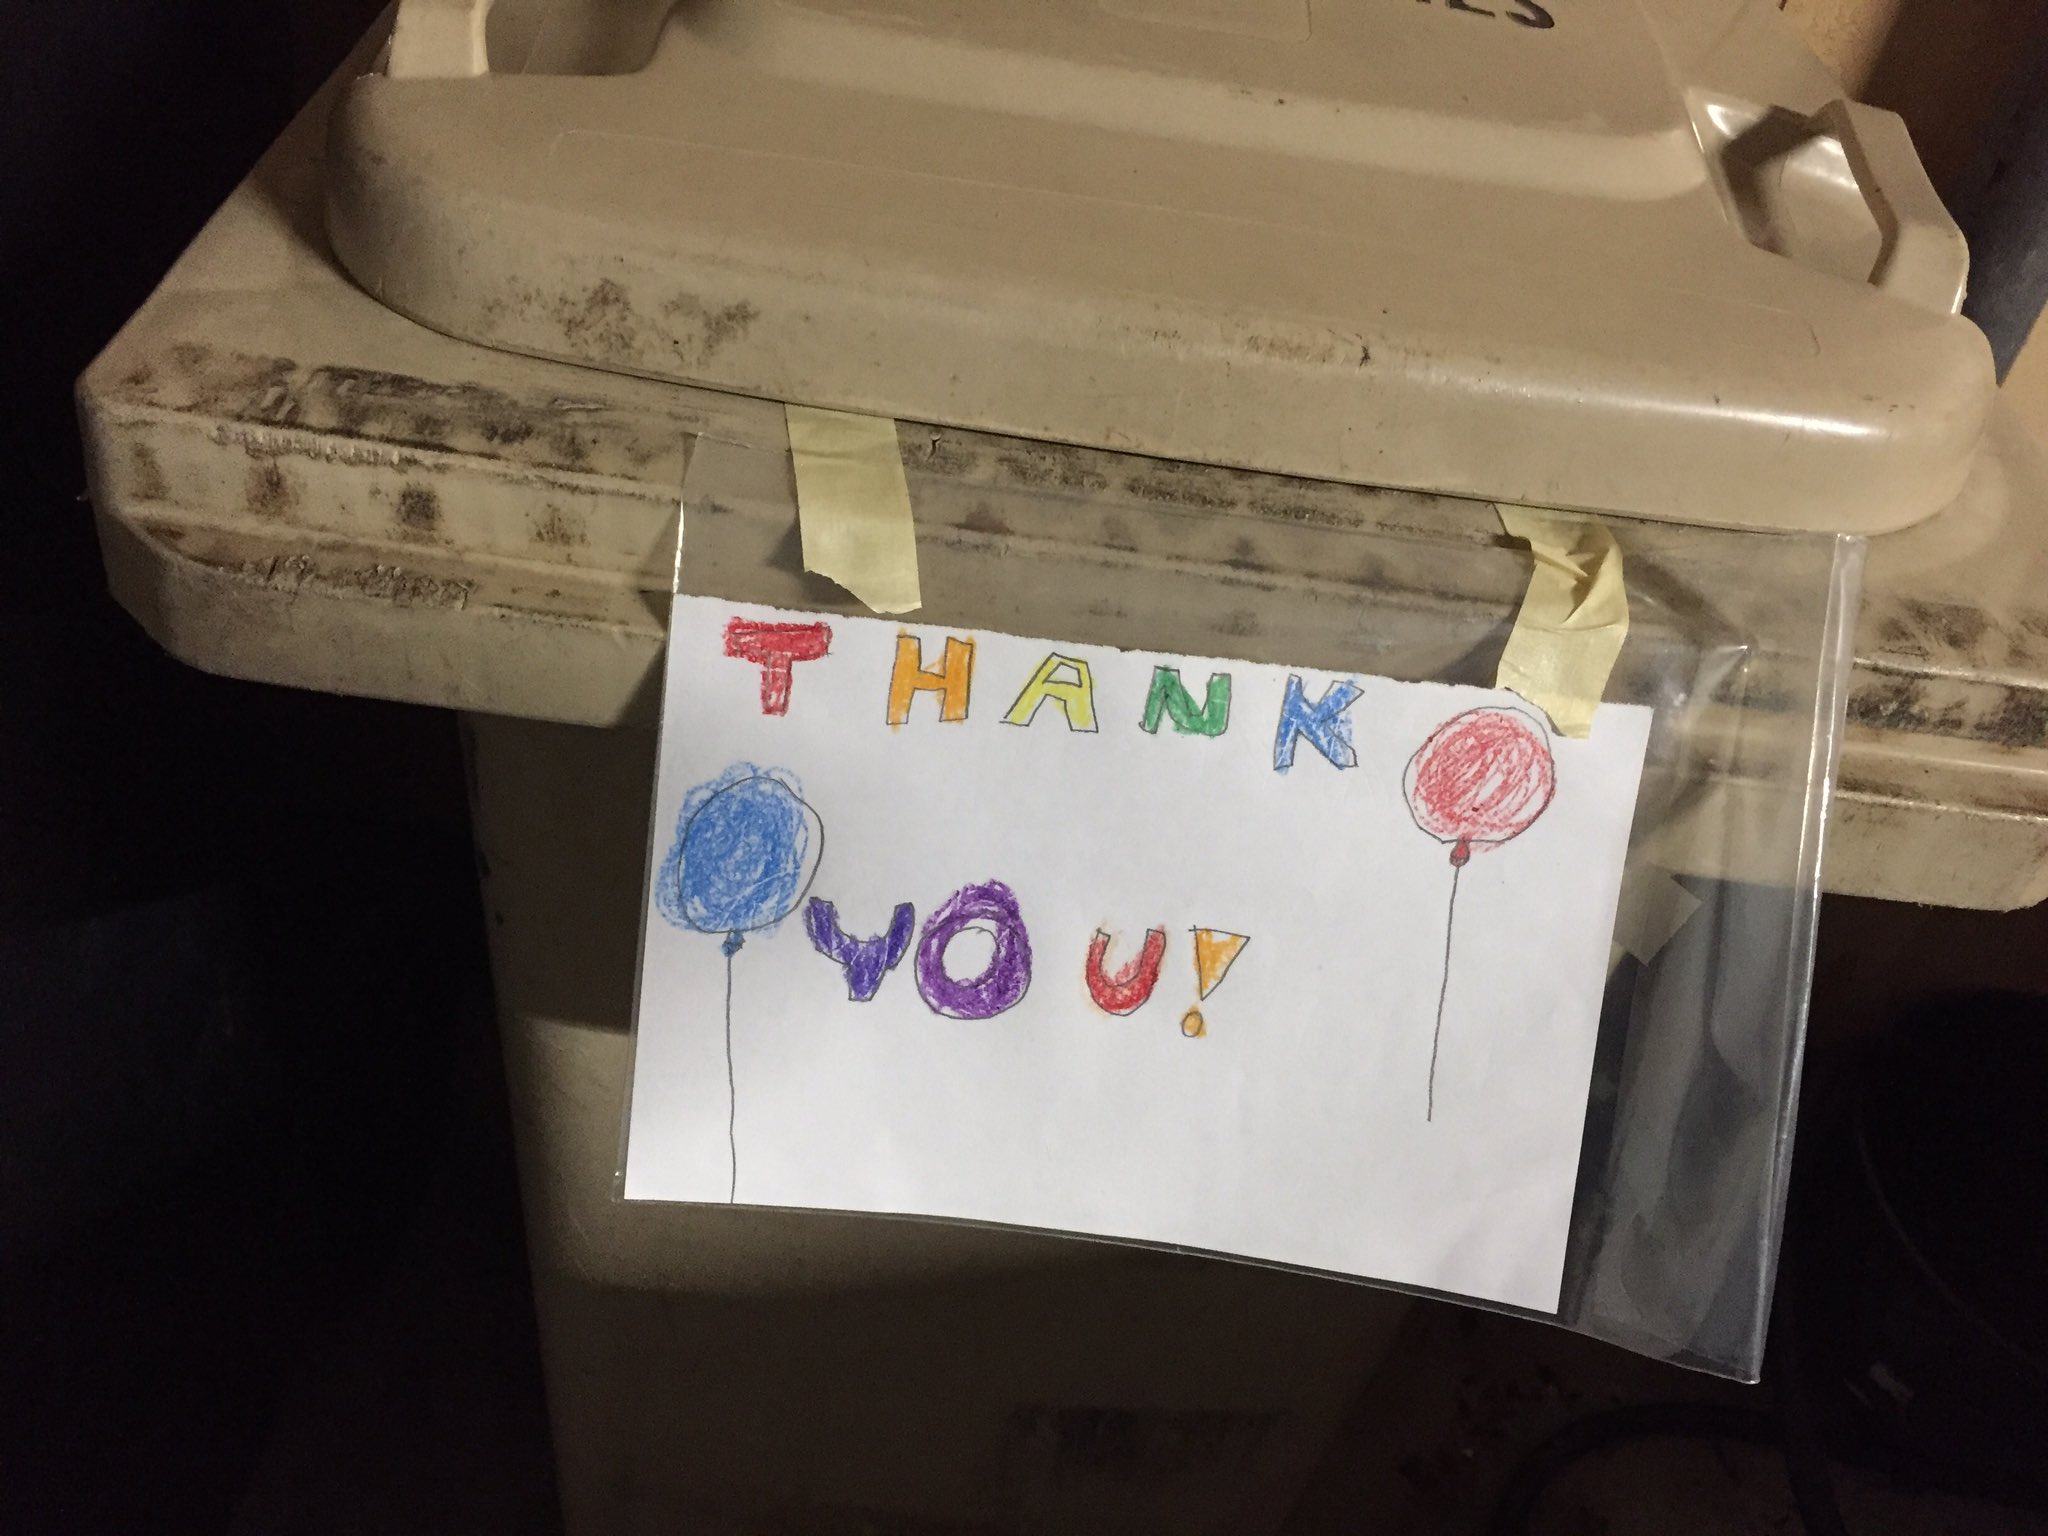 Thank You trash bin